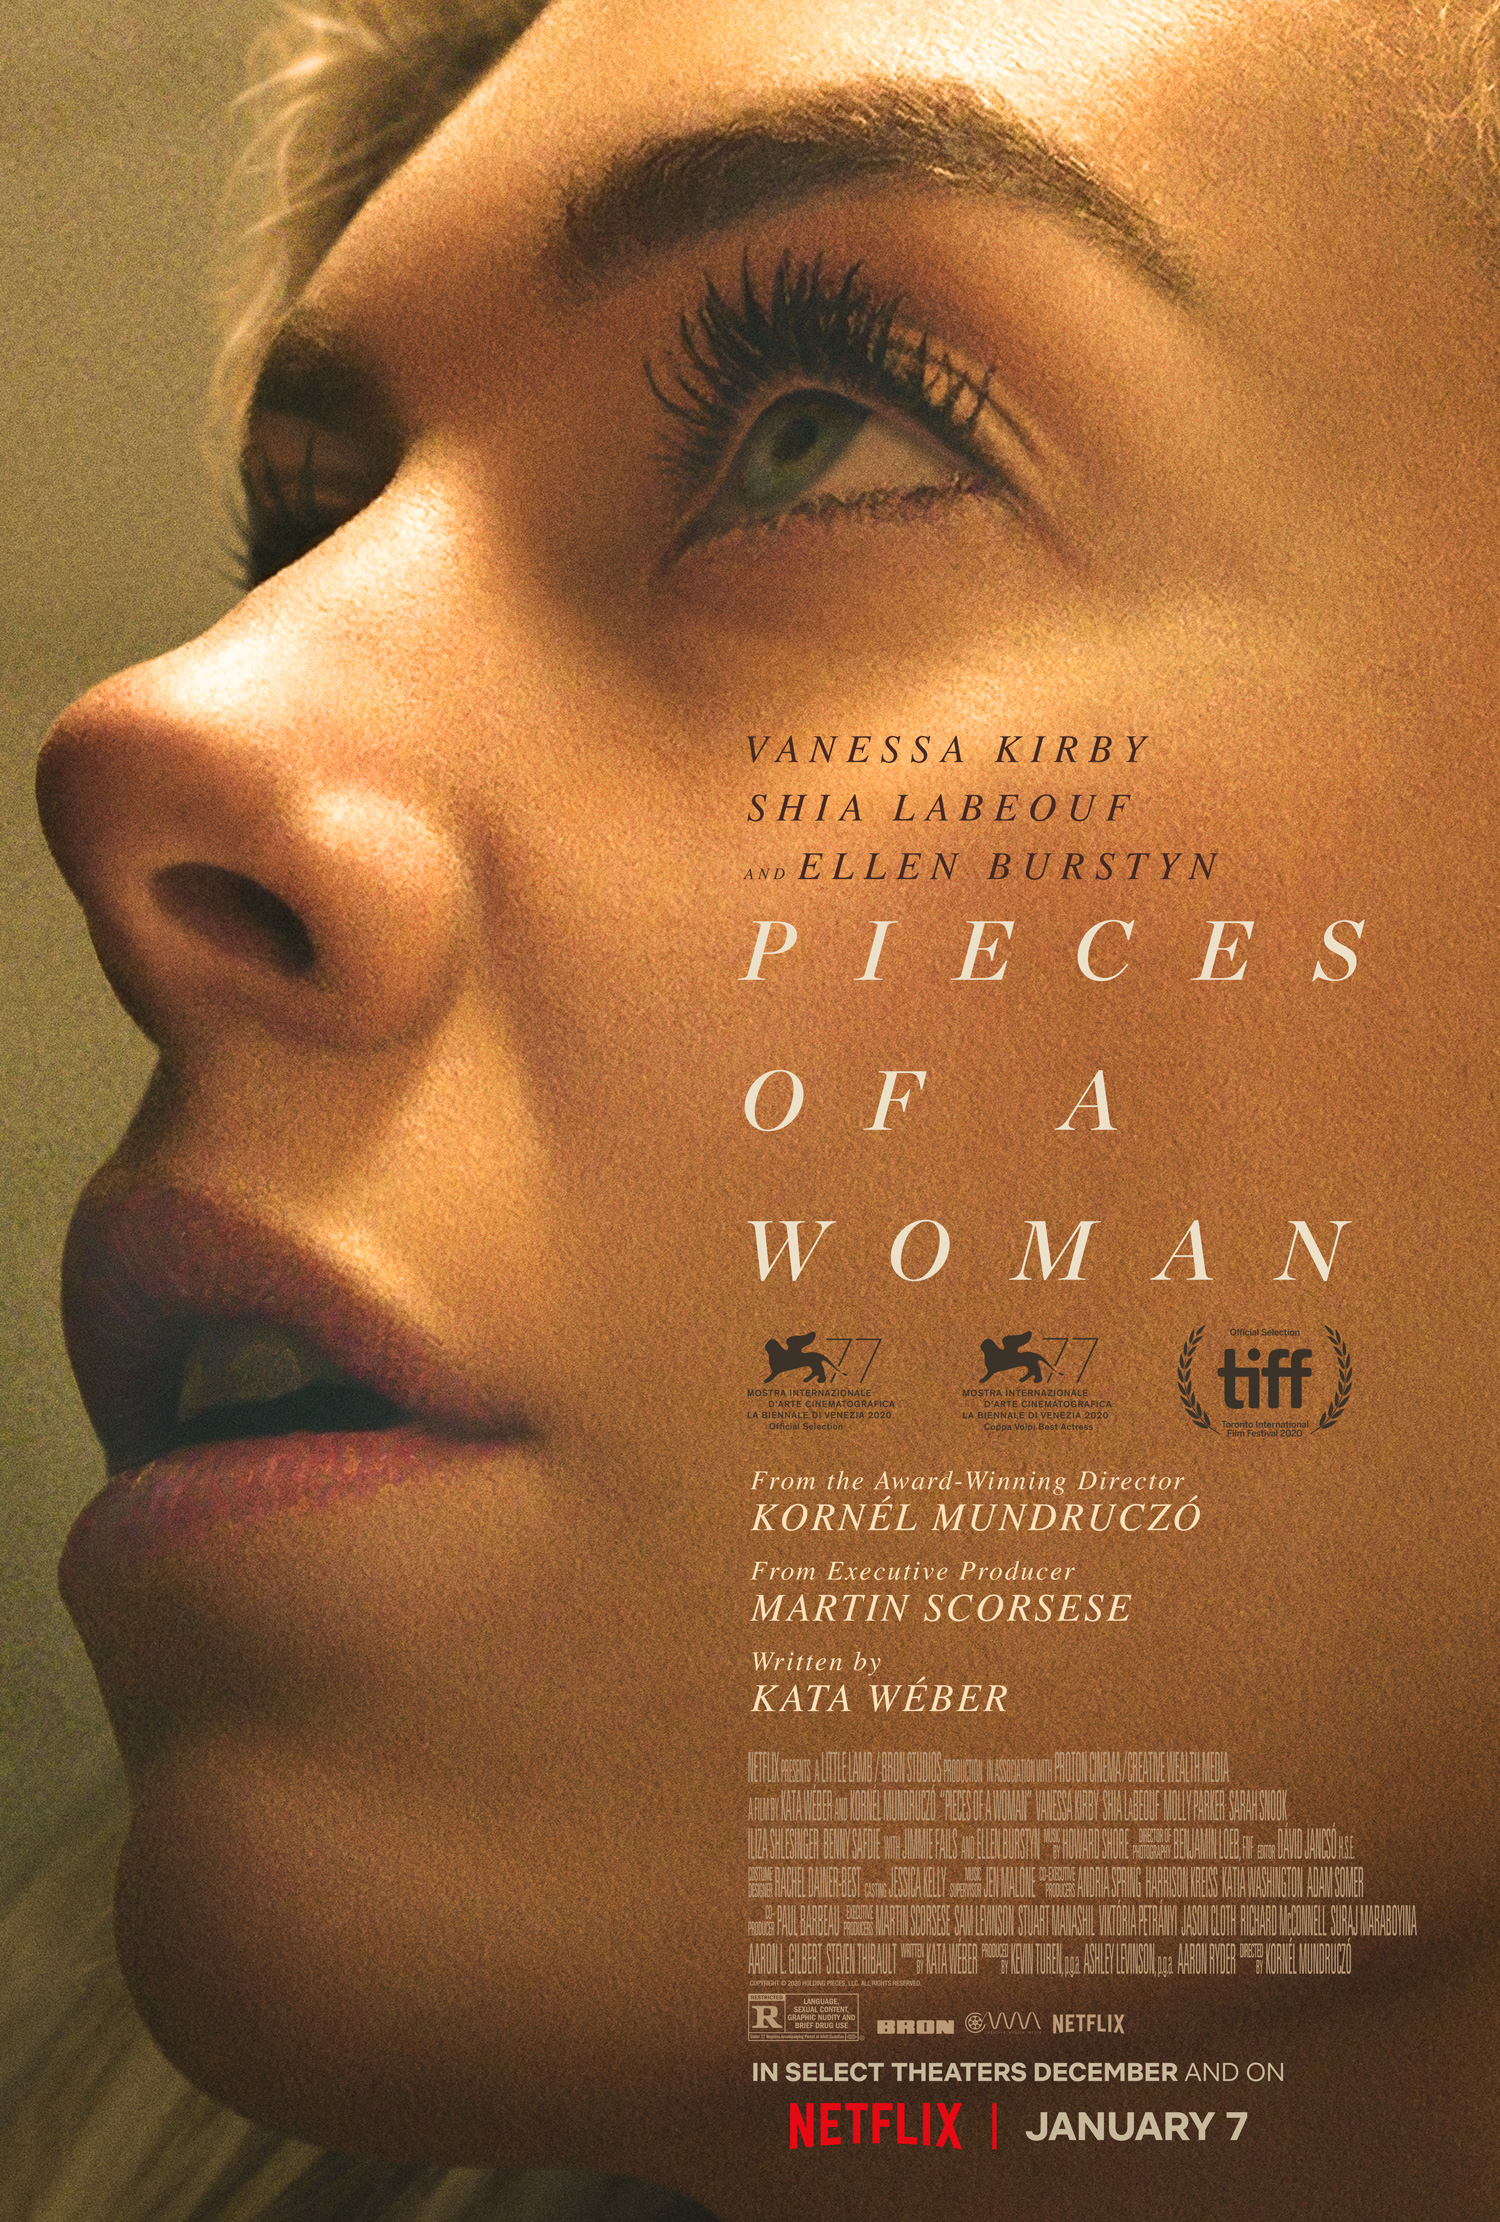 Pieces of a Woman (2020) Bengali Dubbed (Voice Over) WEBRip 720p [Full Movie] 1XBET